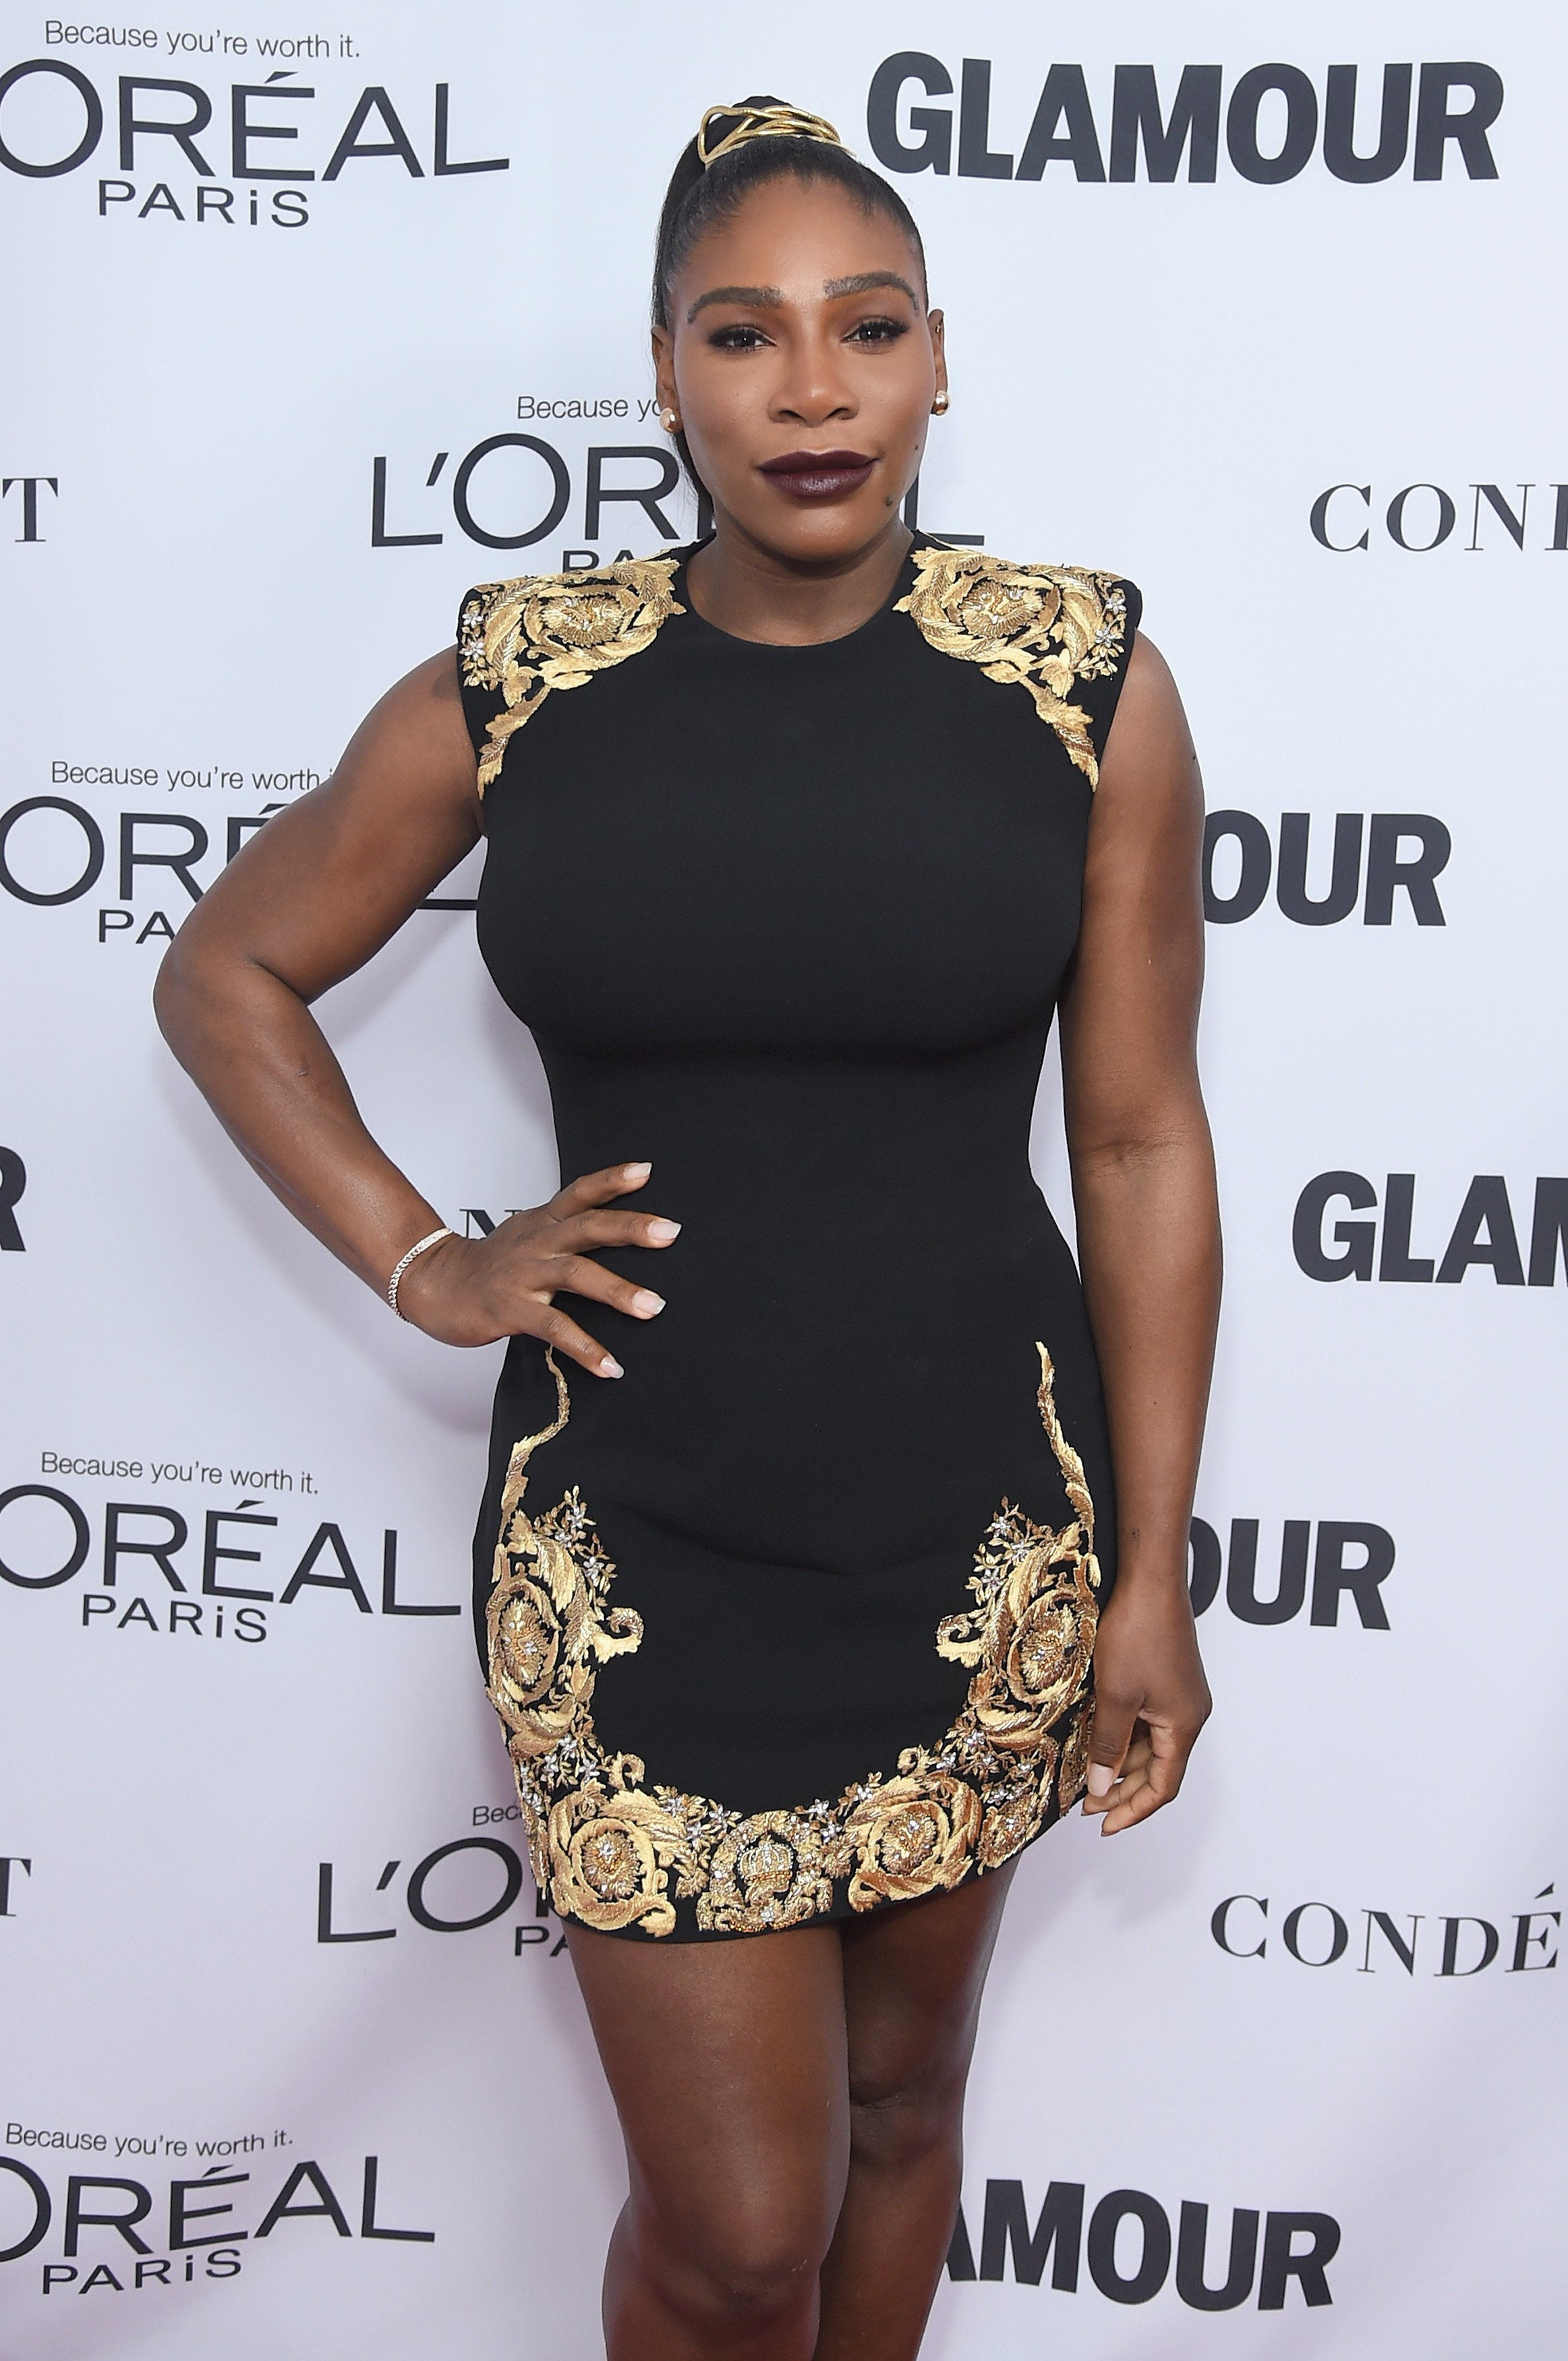 Serena Williams at Glamour's 2017 Women of The Year Awards on Nov. 13, 2017 in New York | Photo: Getty Images